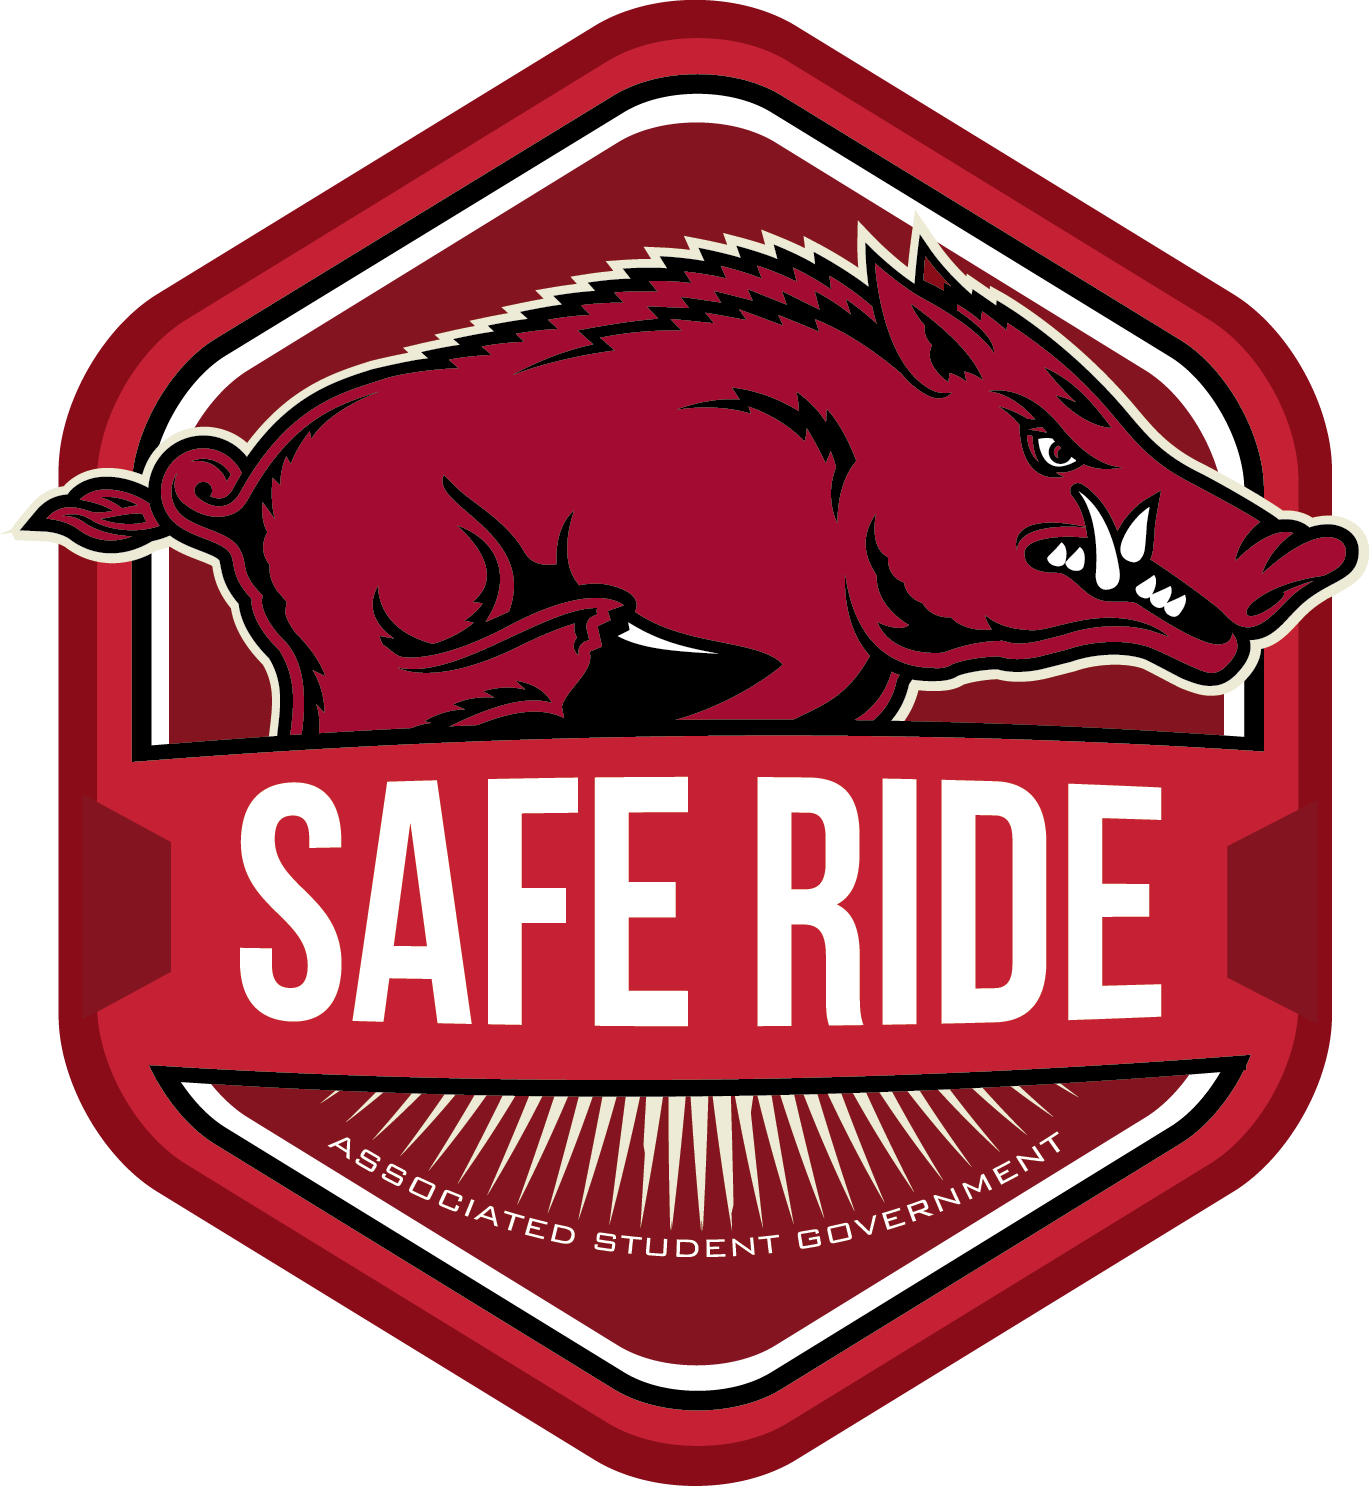 Call Safe Ride